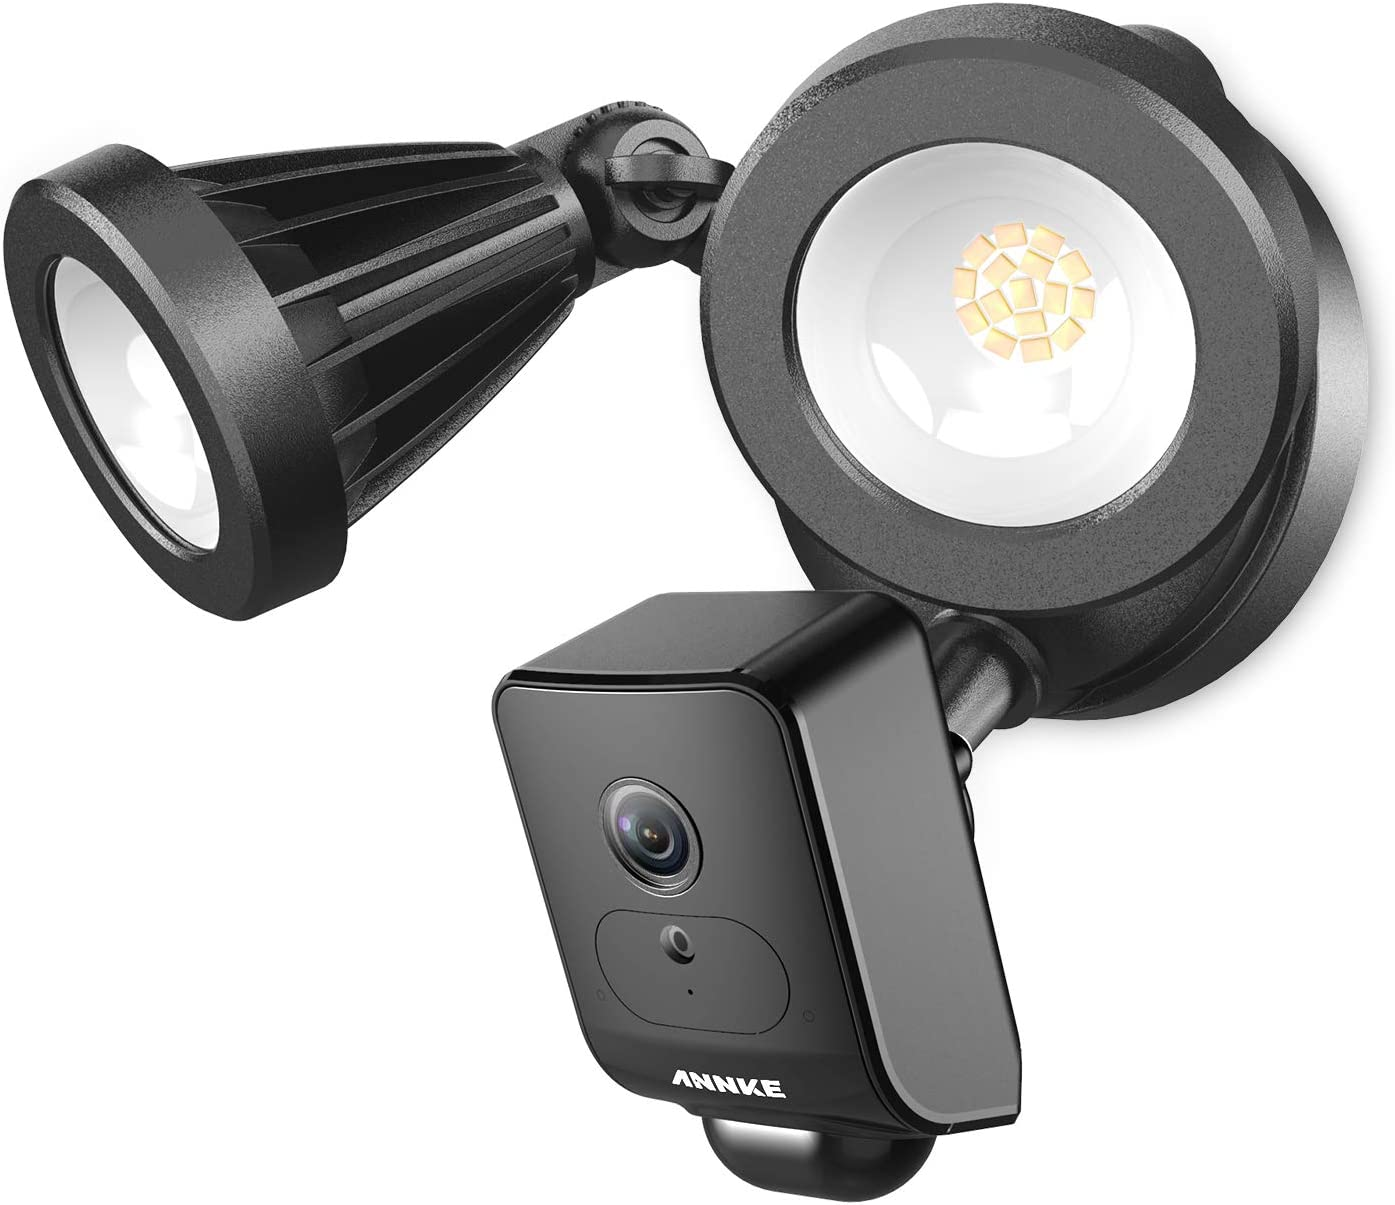 Annke Ai Floodlight Camera Hd Wireless Outdoor Security